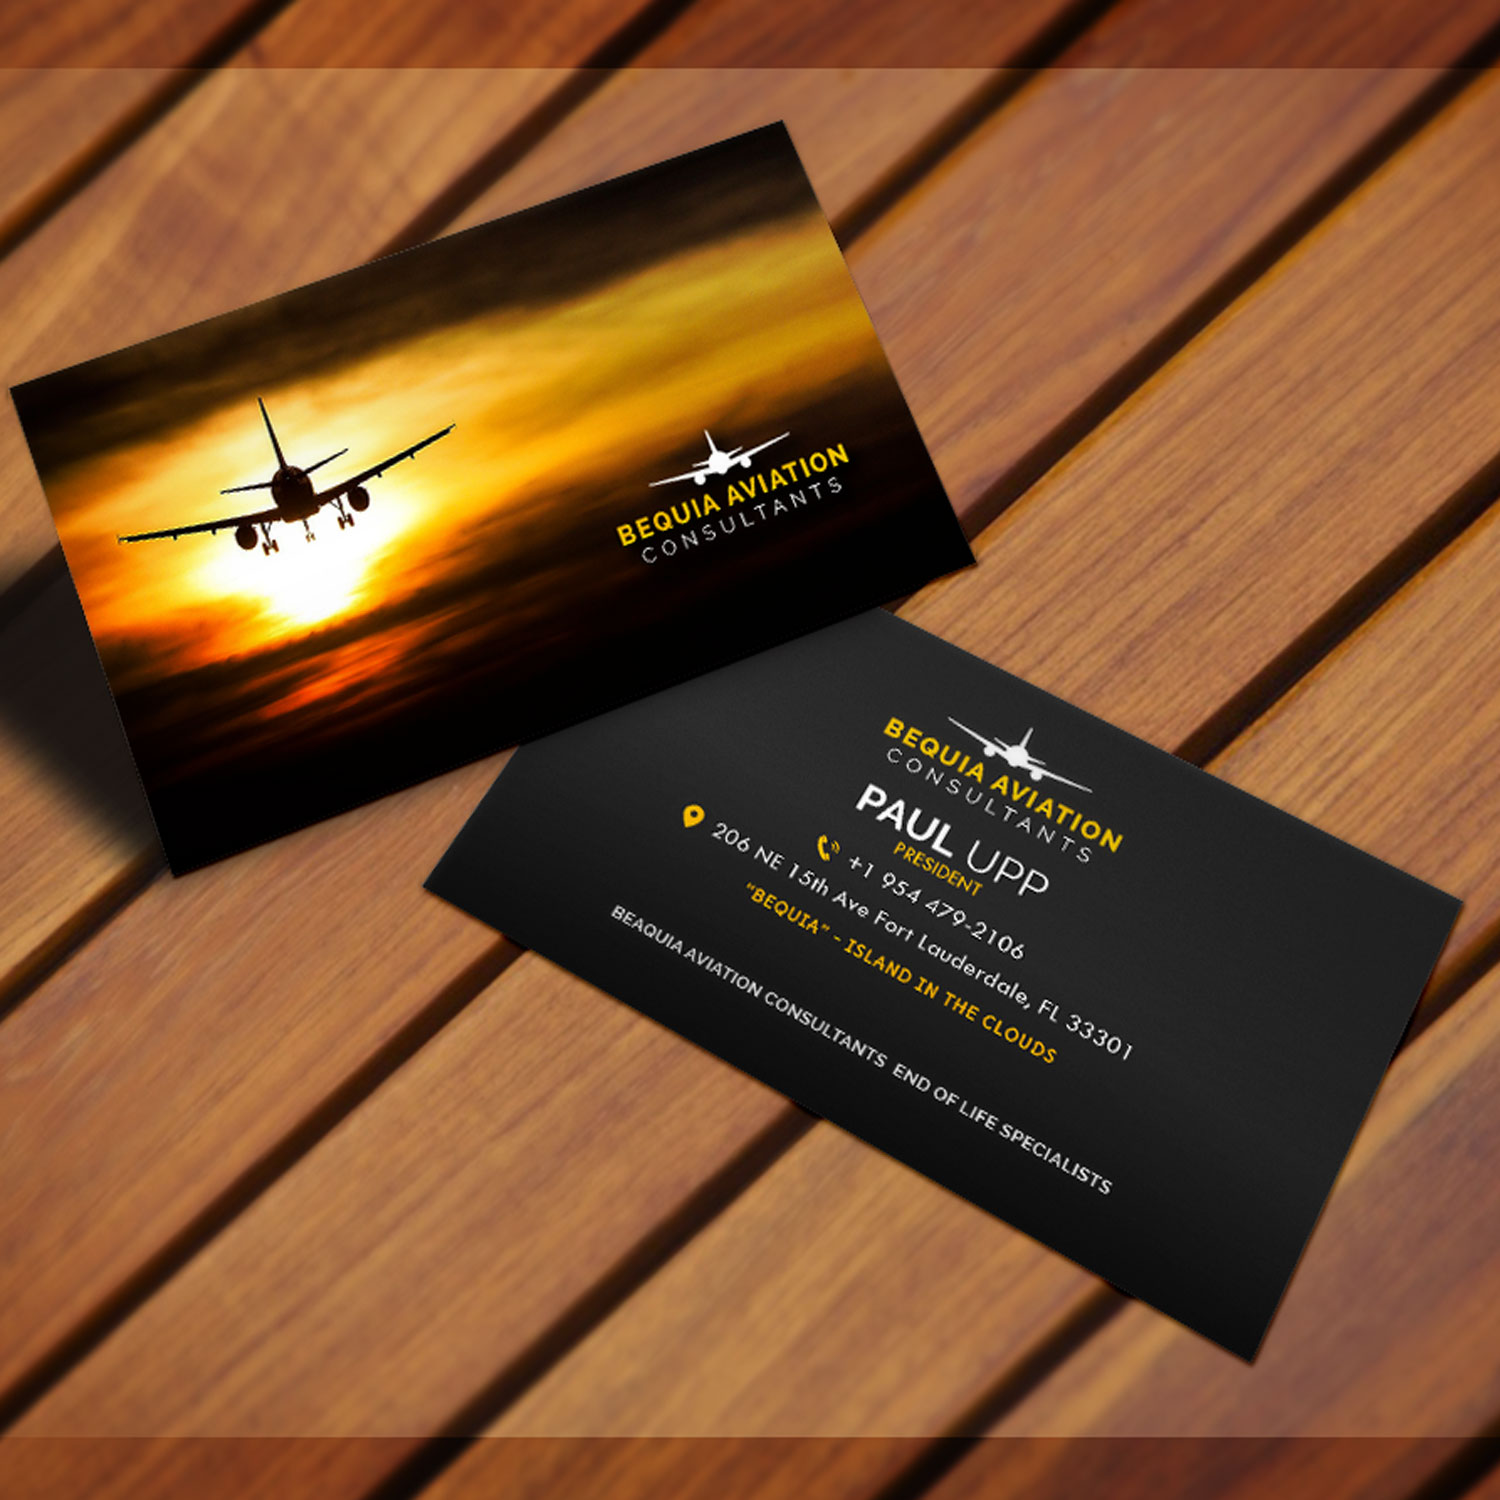 Professional upmarket aviation business card design for bequia business card design by xclusive designer for freedom path marketing design 17701570 colourmoves